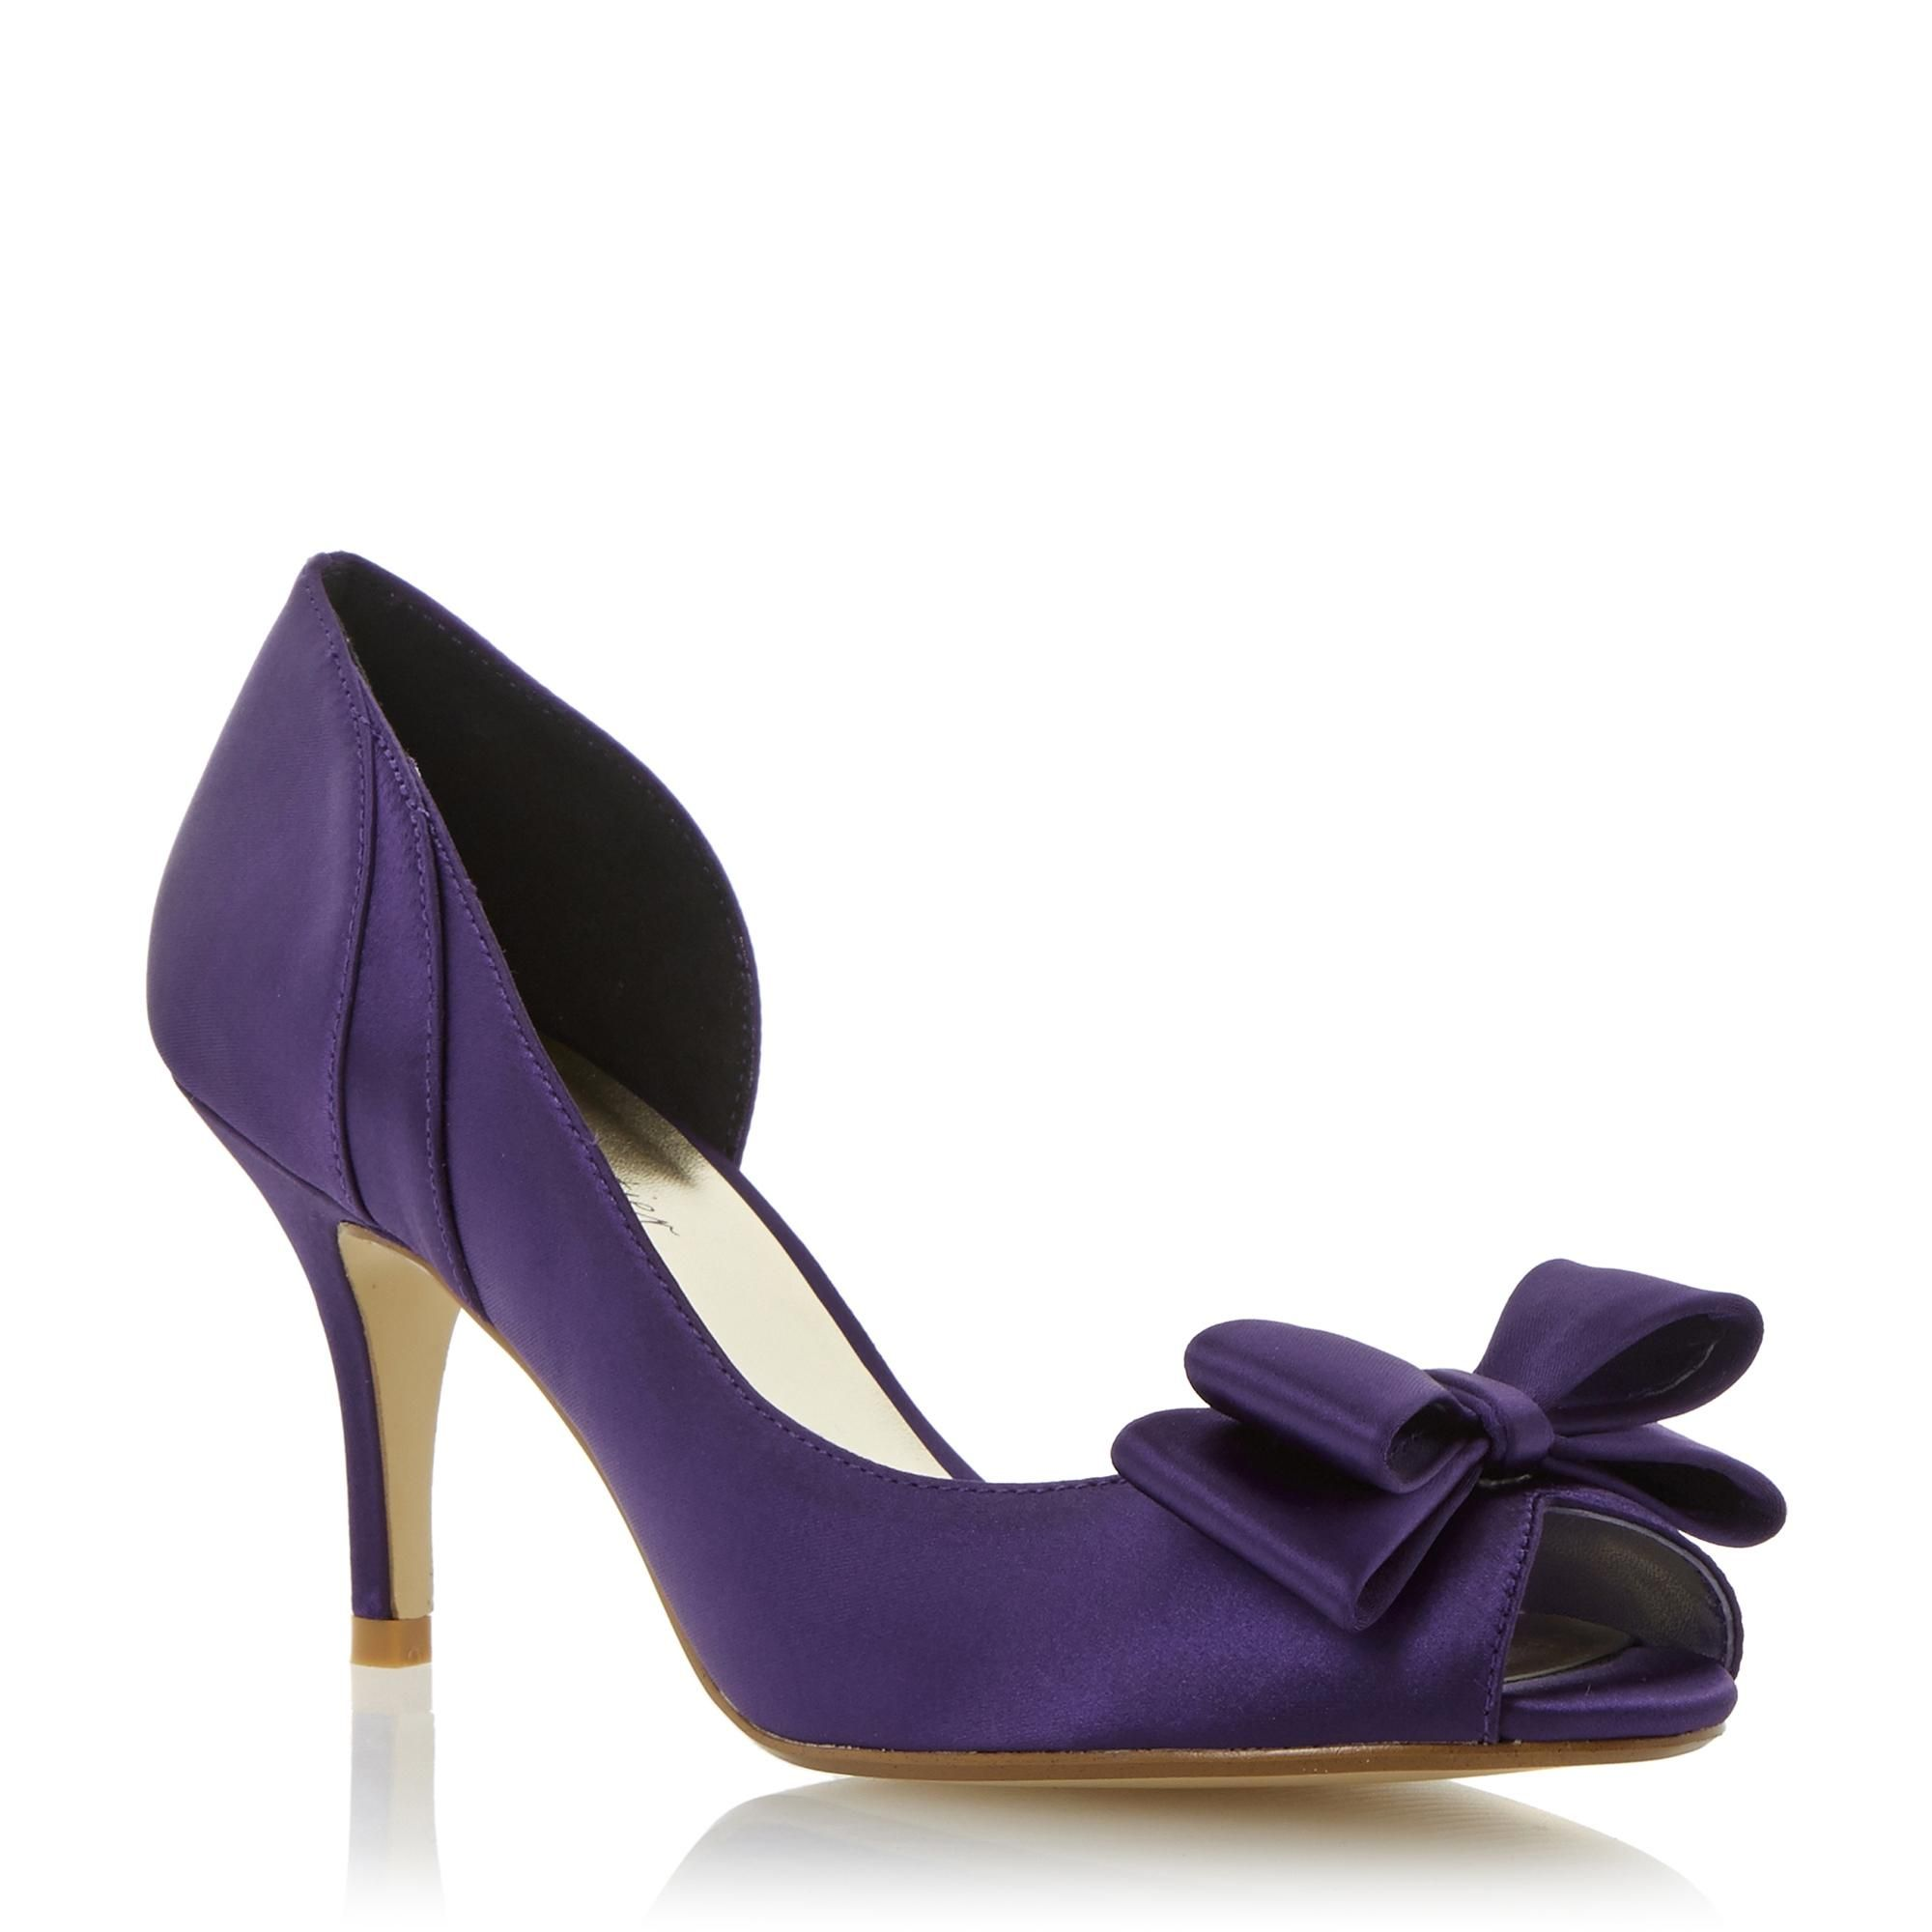 0af2fc692de9 Roland Cartier Ladies DAMIANA - Semi D orsay Peep Toe Bow Trim Court Shoe  purple